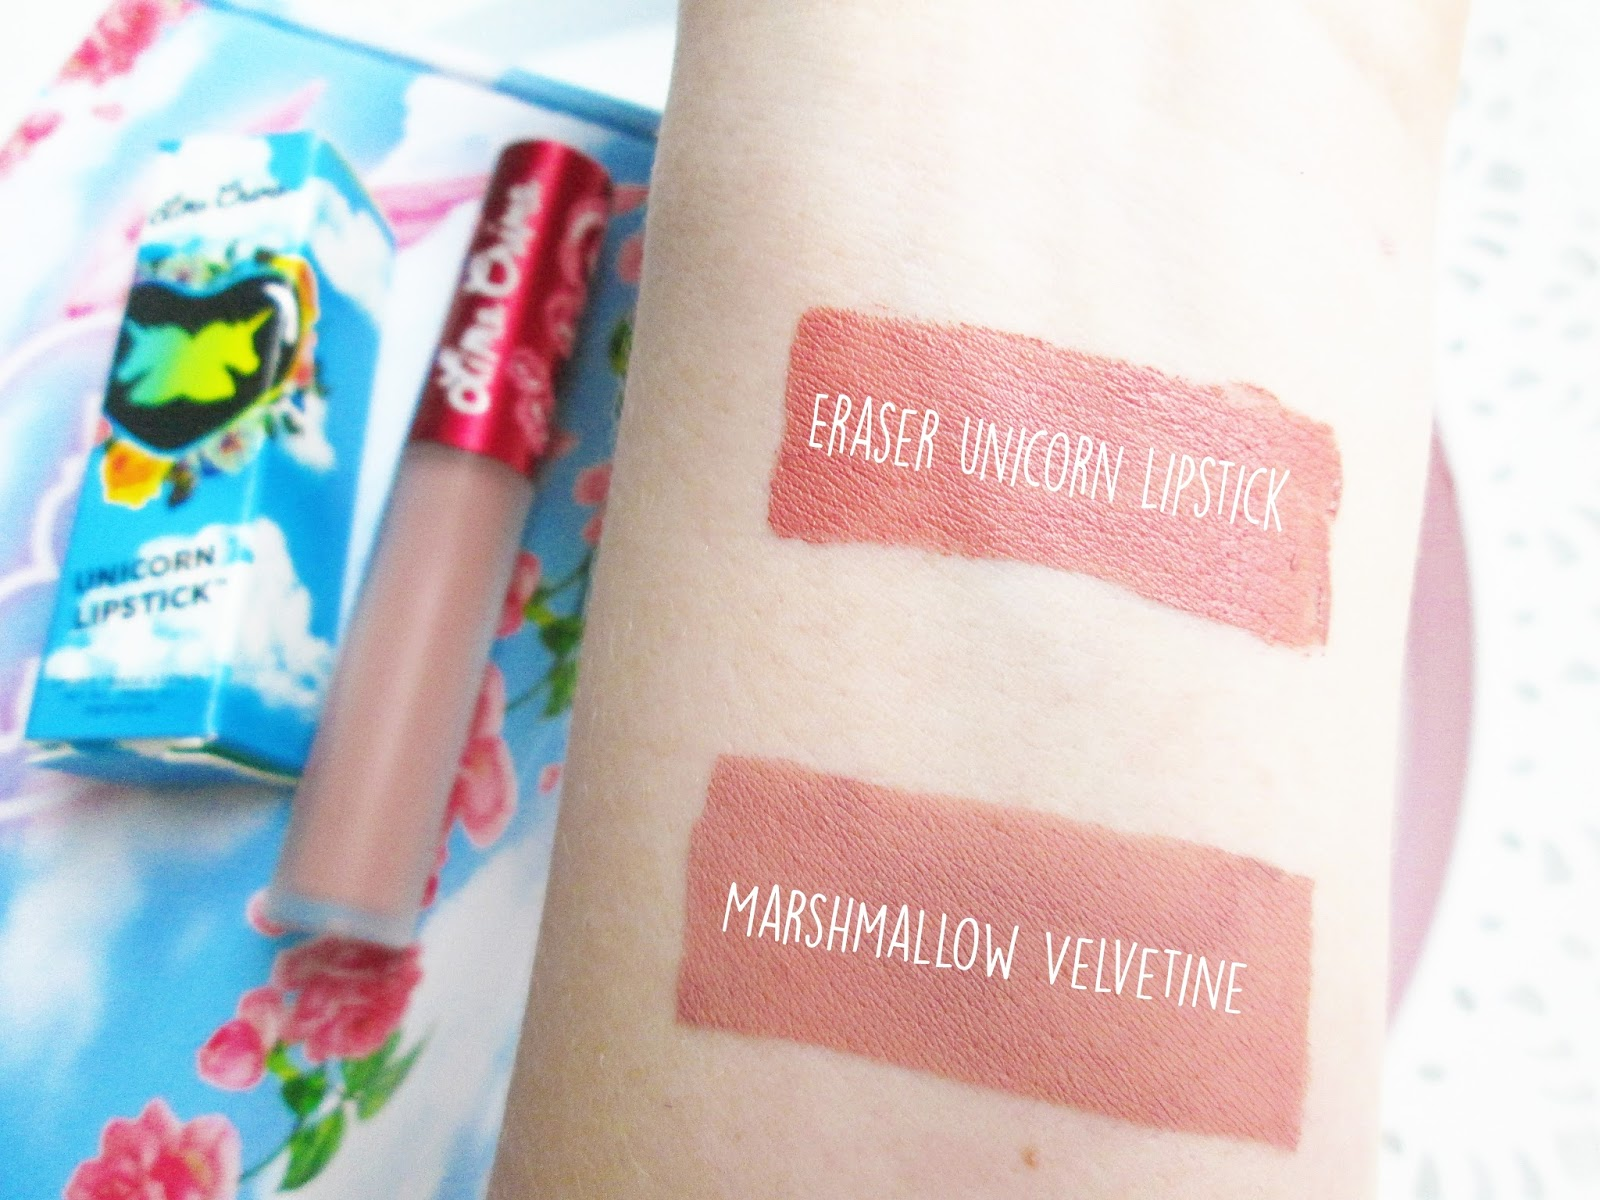 Lime Crime 2 Moods Duo Review & Swatches | Dainty Alice